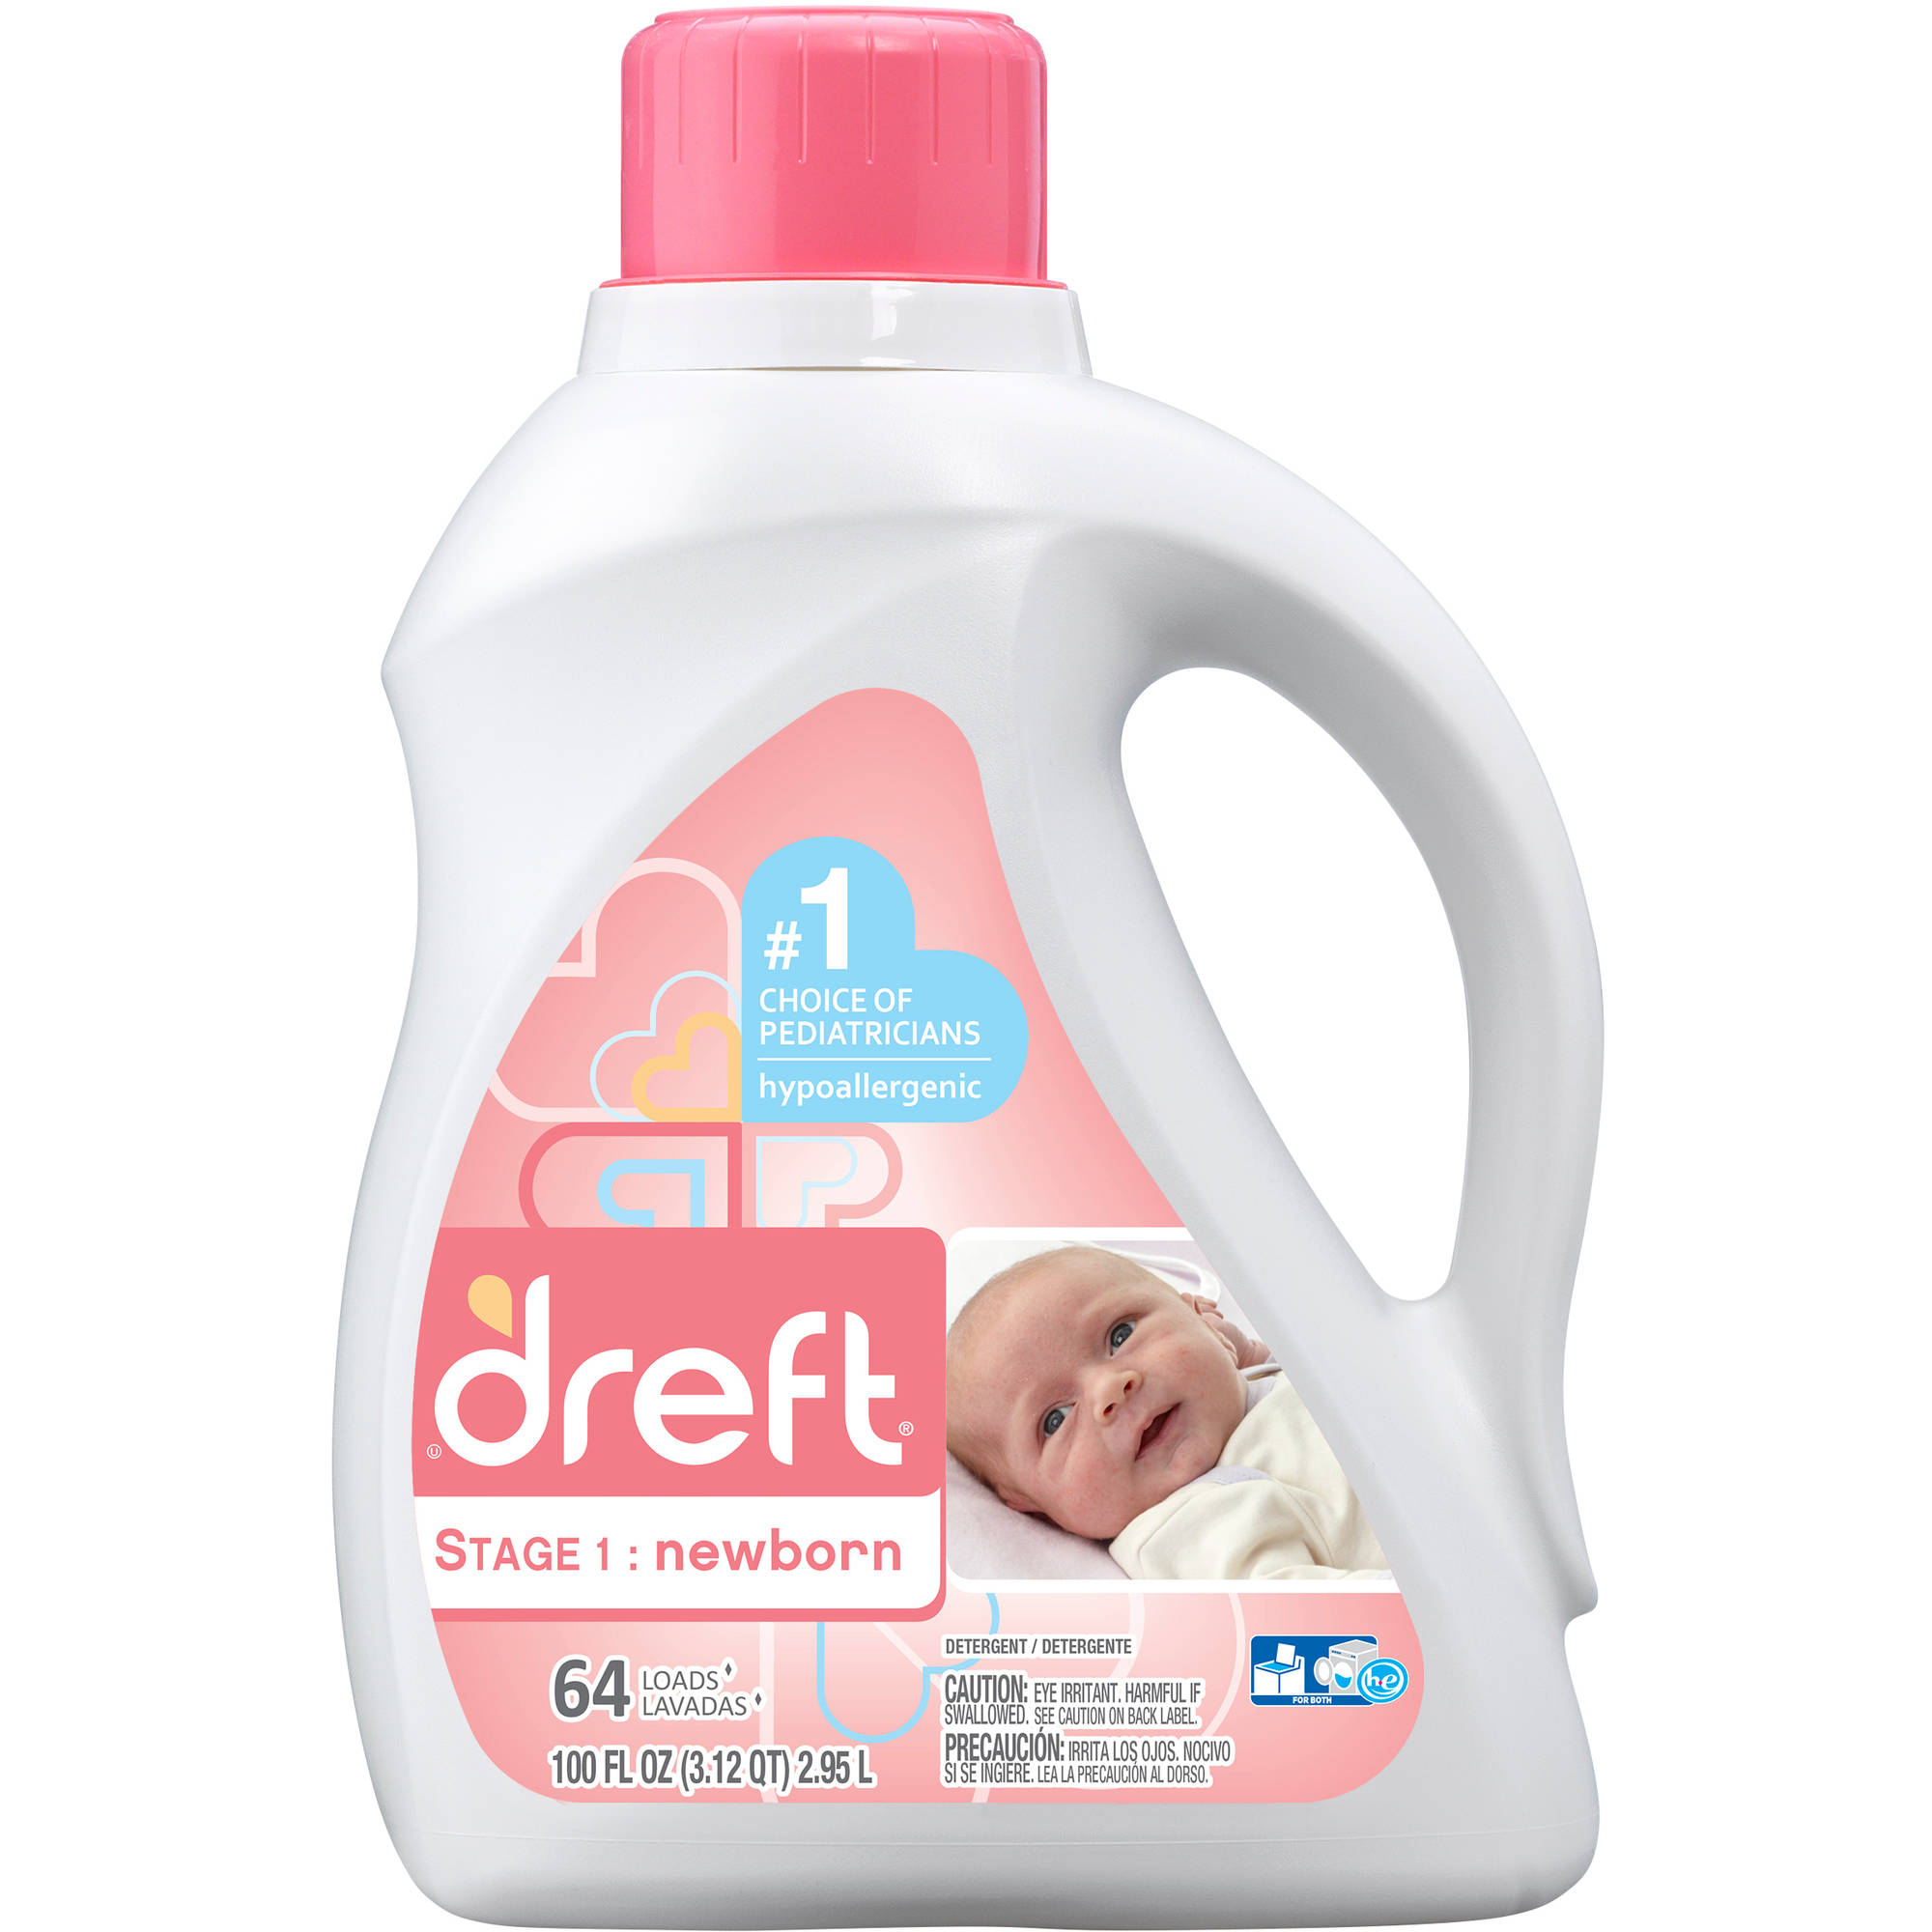 Dreft Stage 1: Newborn Liquid Laundry Detergent, 64 Loads 100 fl oz